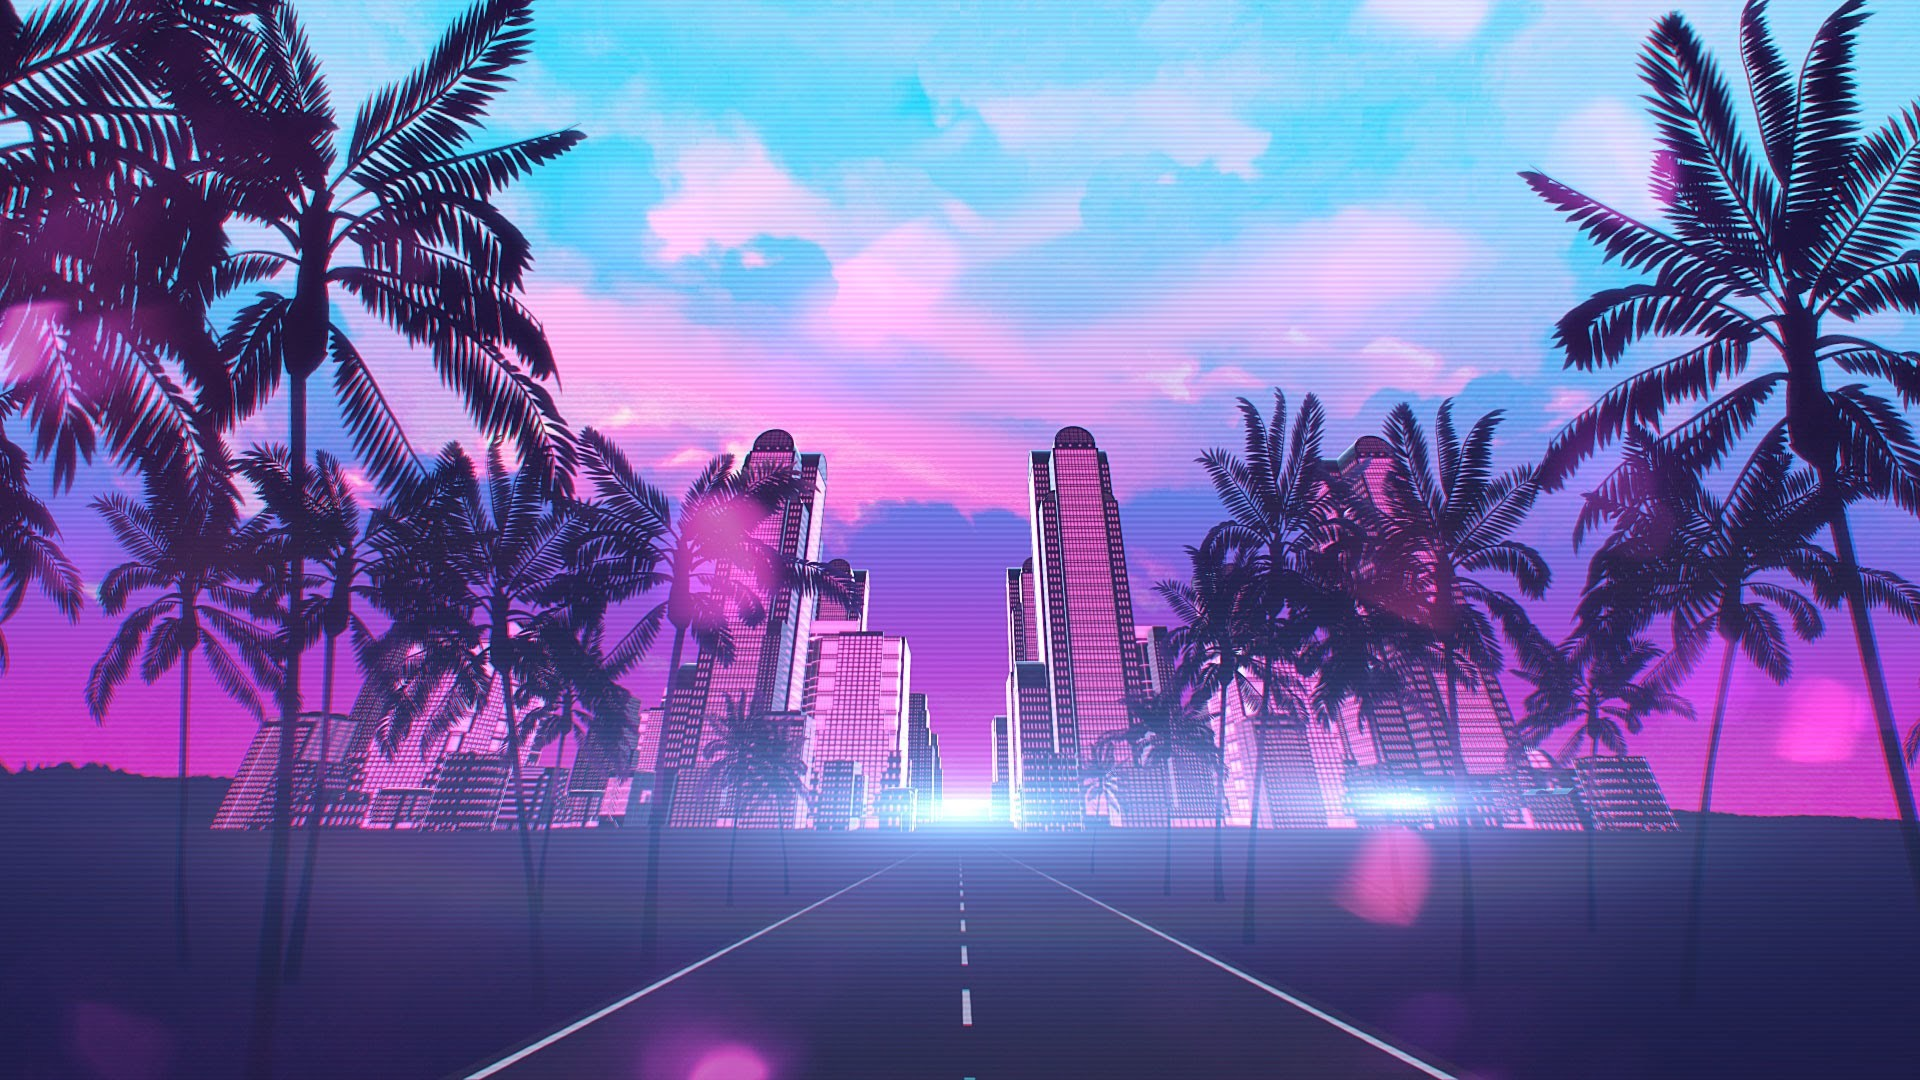 Max Headroom Animated Wallpaper (69+ images)